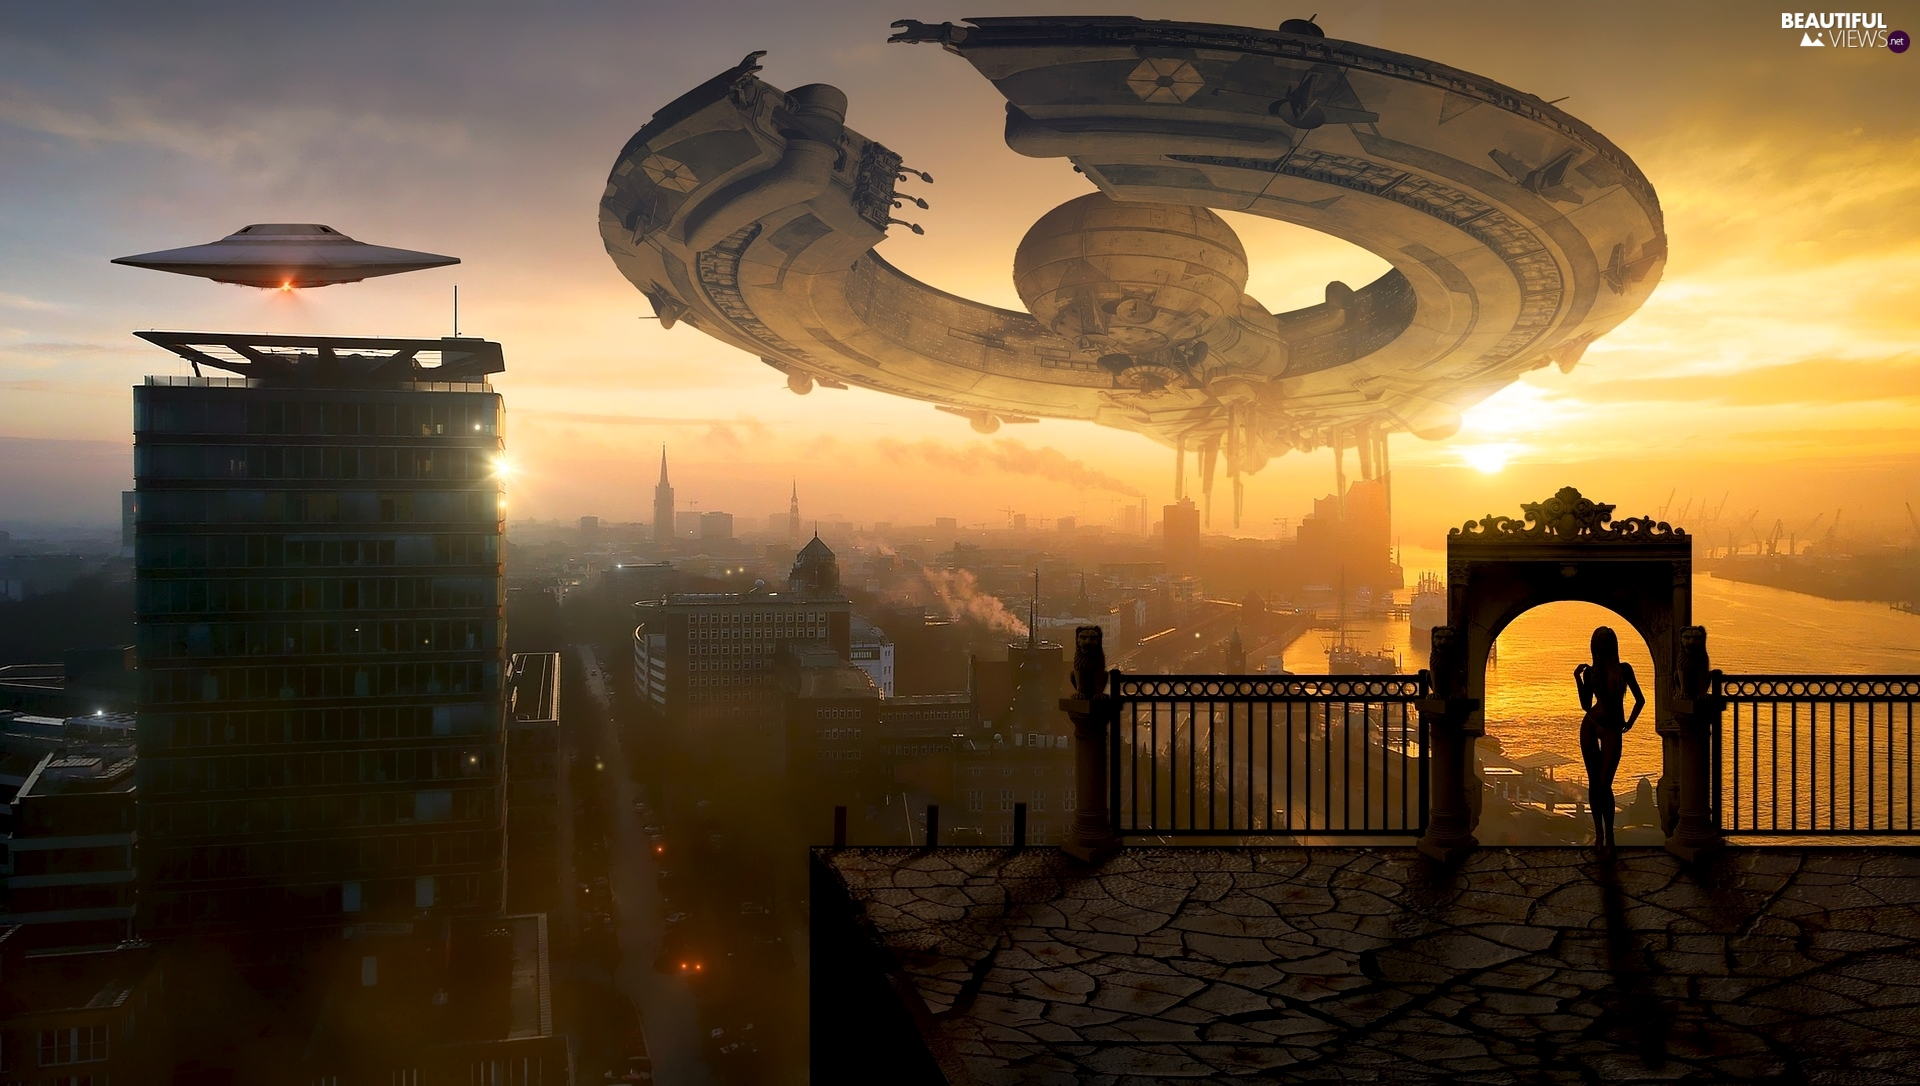 spaceships, fantasy, Women, Great Sunsets, Gate, Town